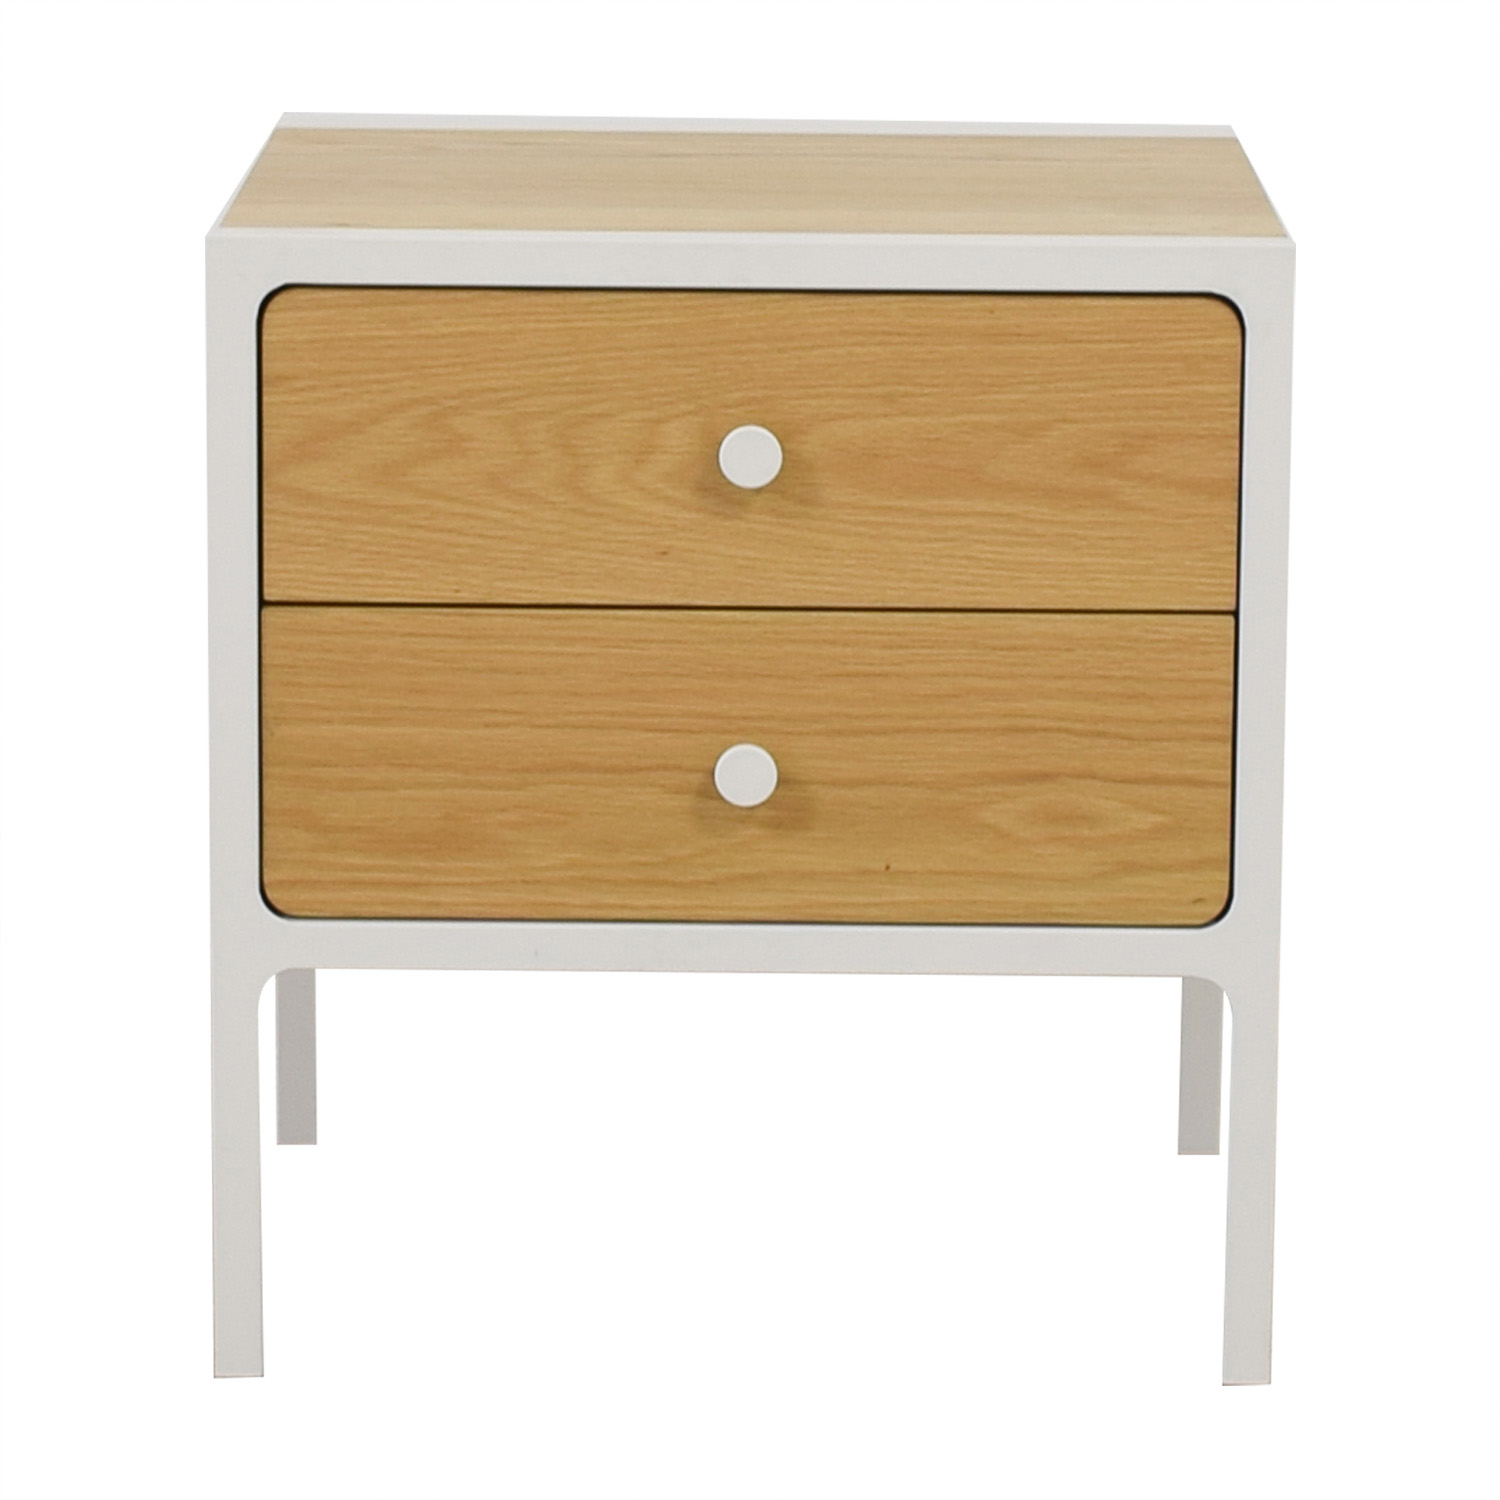 Land of Nod Land of Nod Larkin Nightstand nj